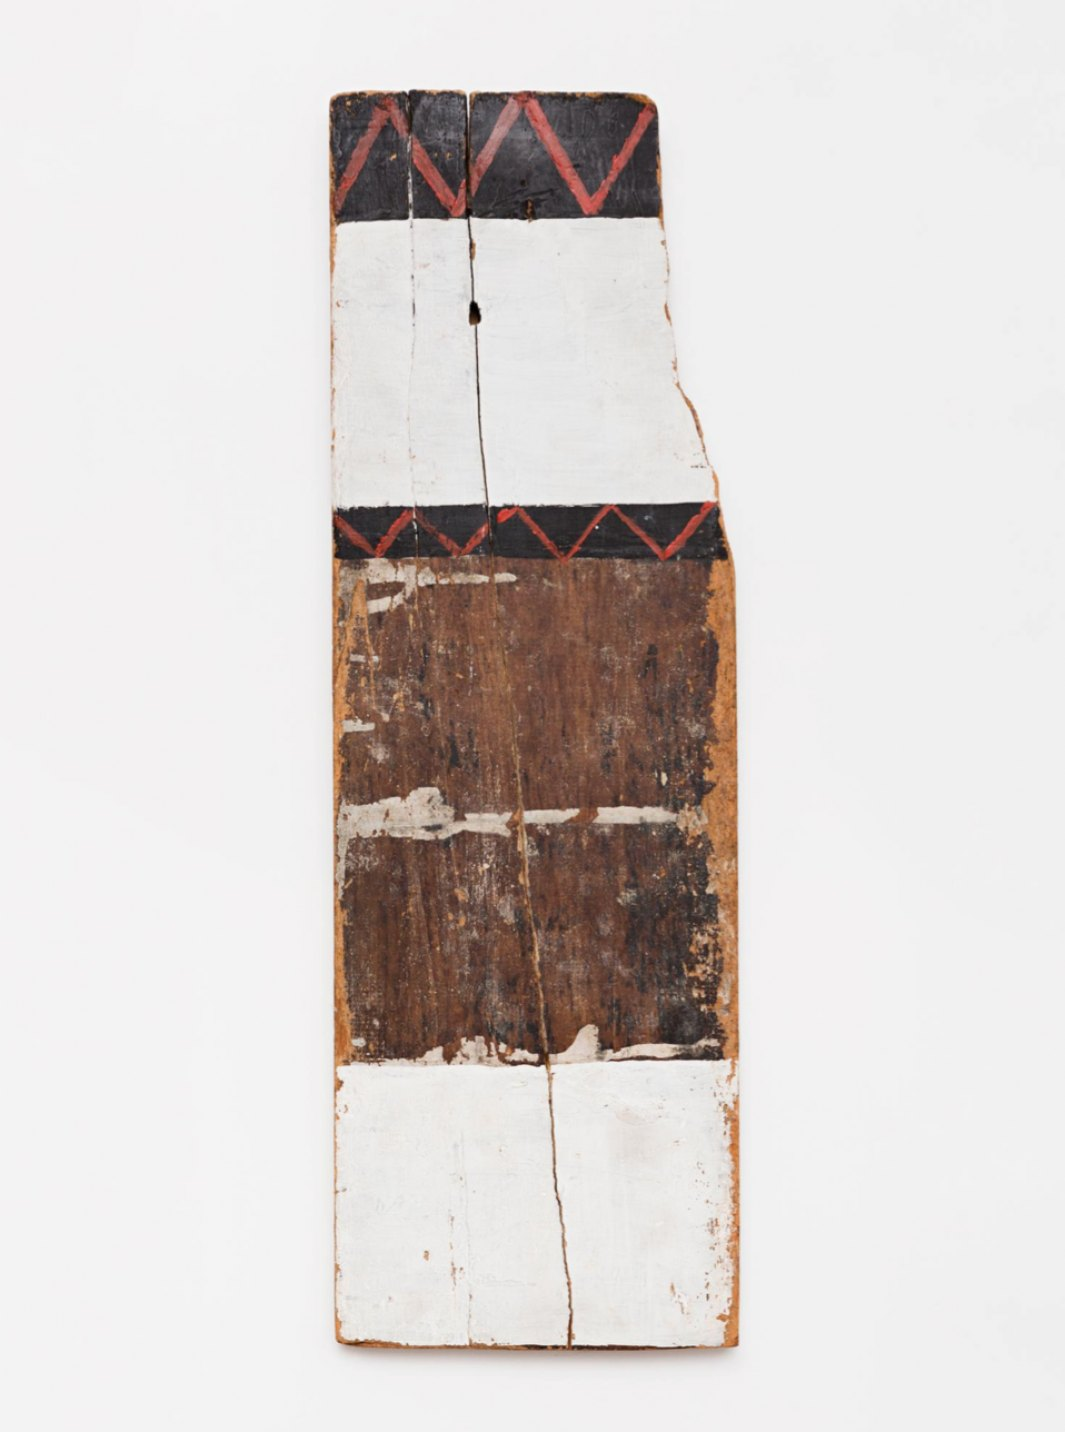 Celso Renato, <em>Untitled</em>, s/d, acrylic on wood, 75 × 24 × 2 cm - Mendes Wood DM